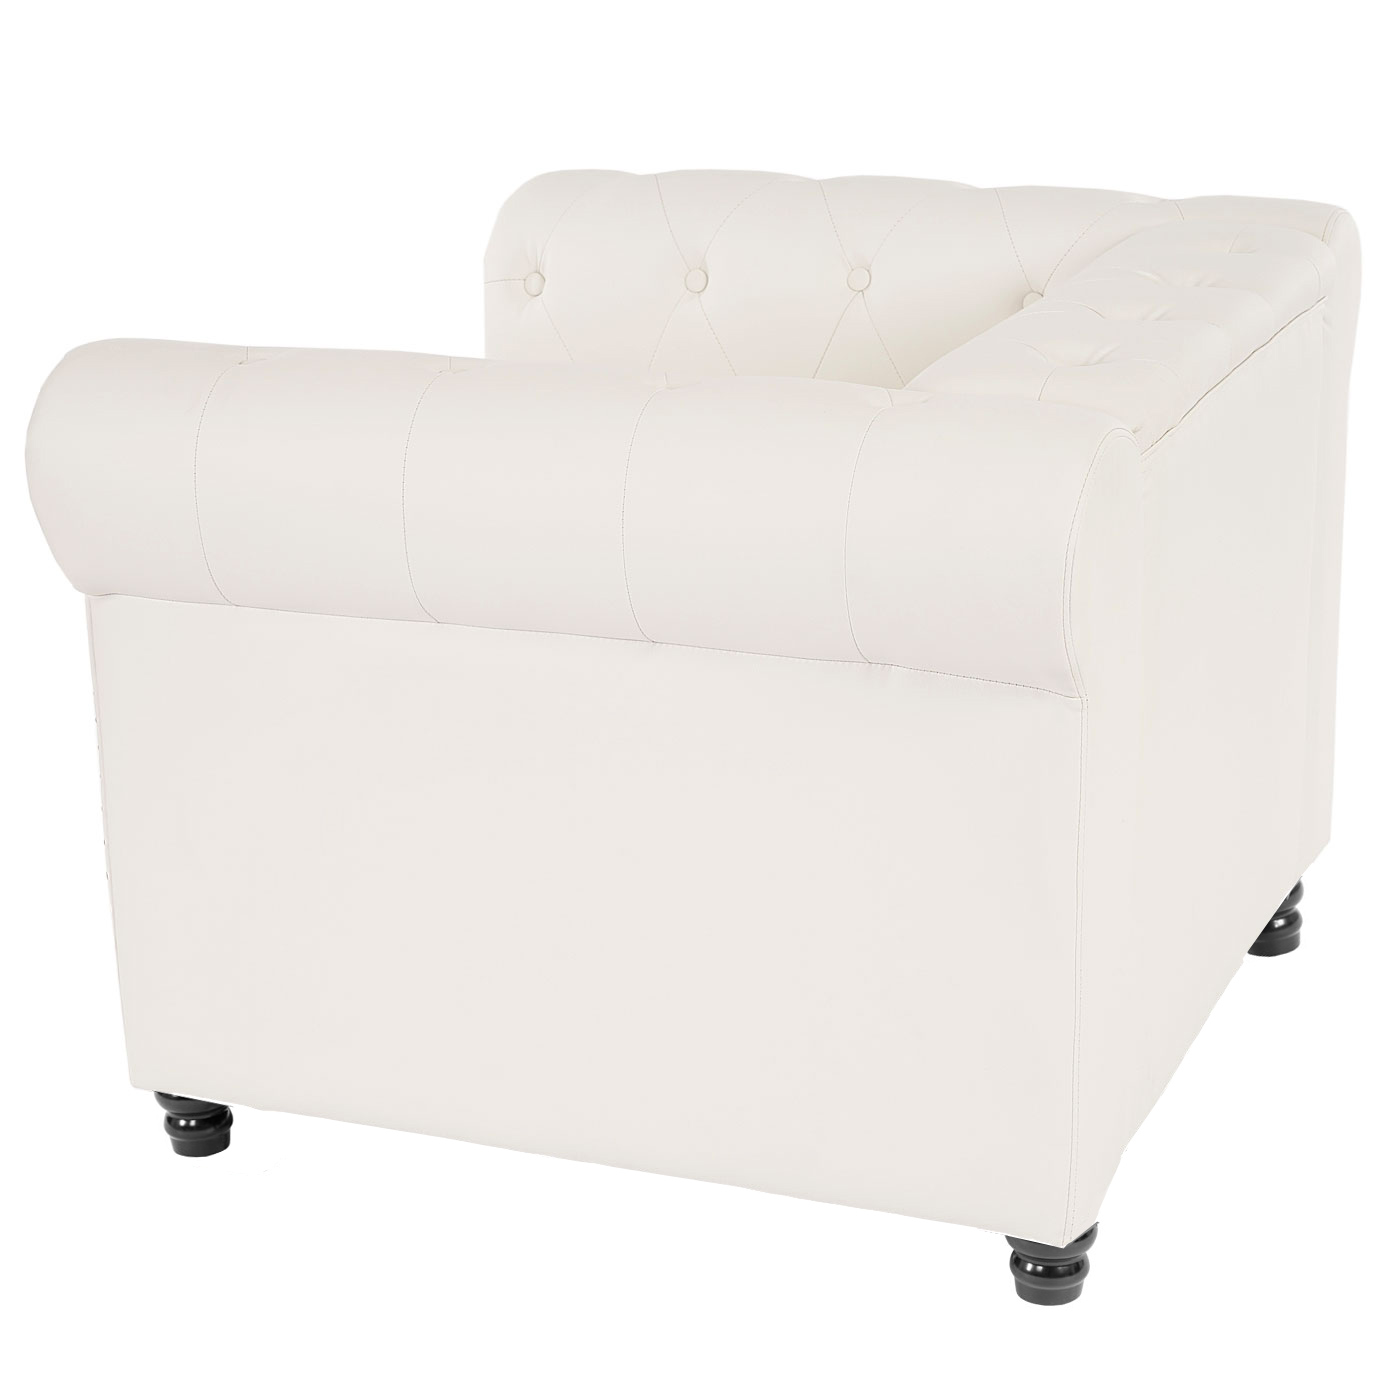 Lounge Sessel Rund Chesterfield Lounge Sessel Runde Füsse Weiss Jamb Ch